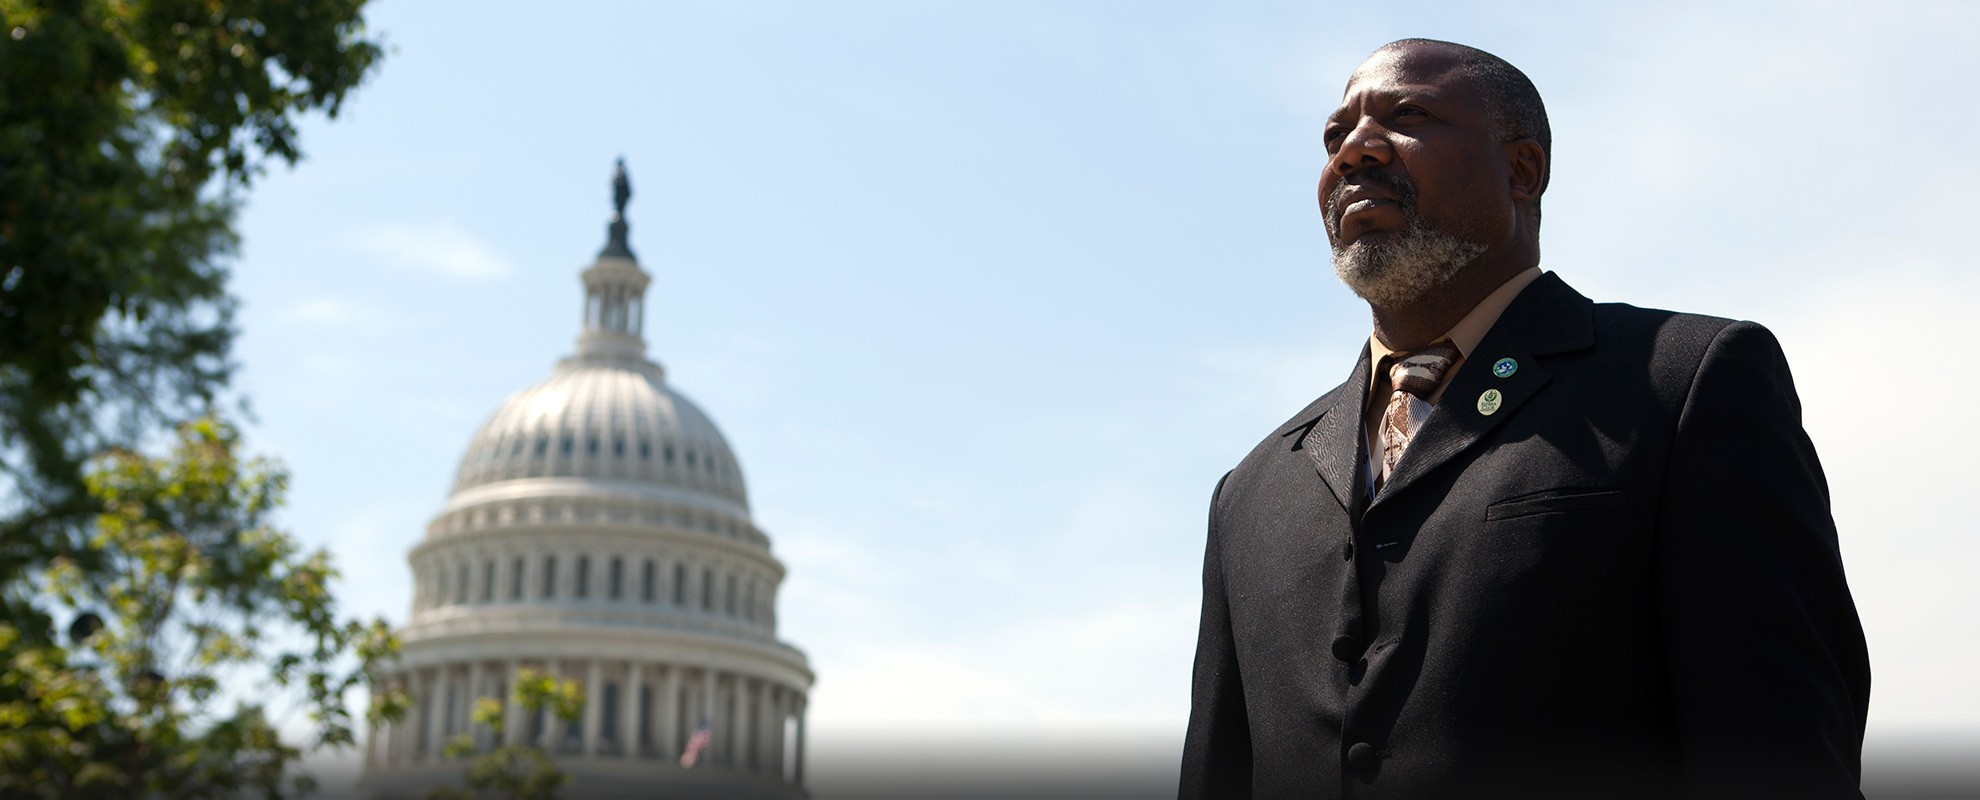 Hilton Kelley, Clean Air Ambassador and advocate for cleaning up pollution from refineries.